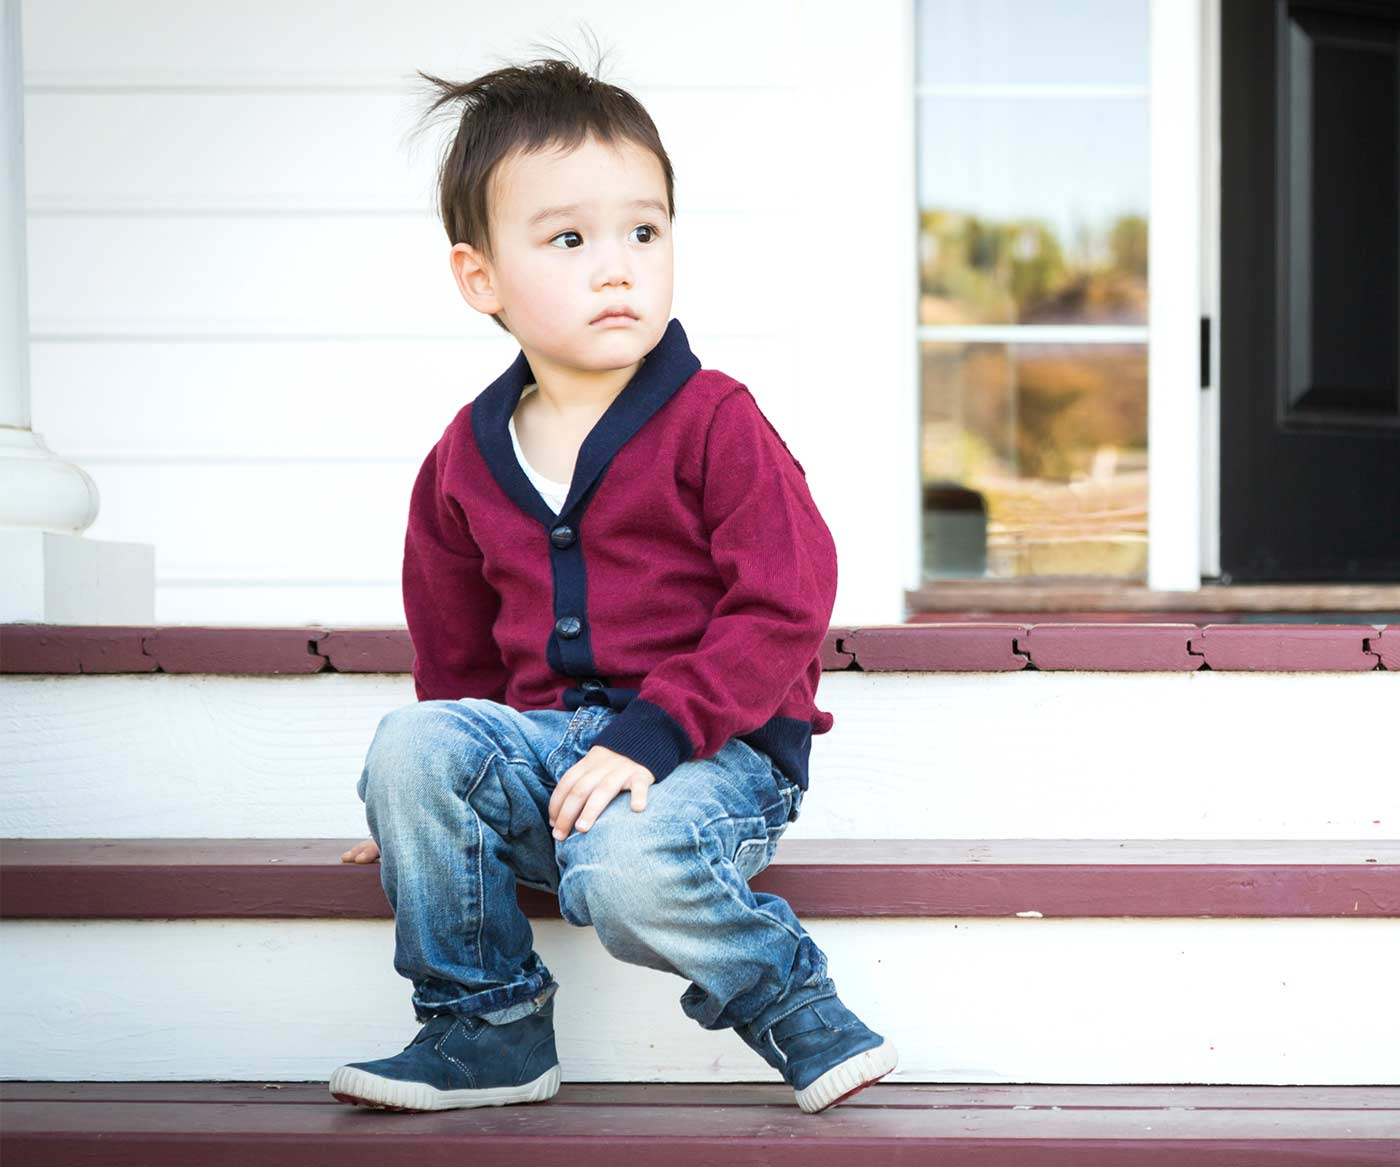 Sad little boy: Why every parent needs to show empathy